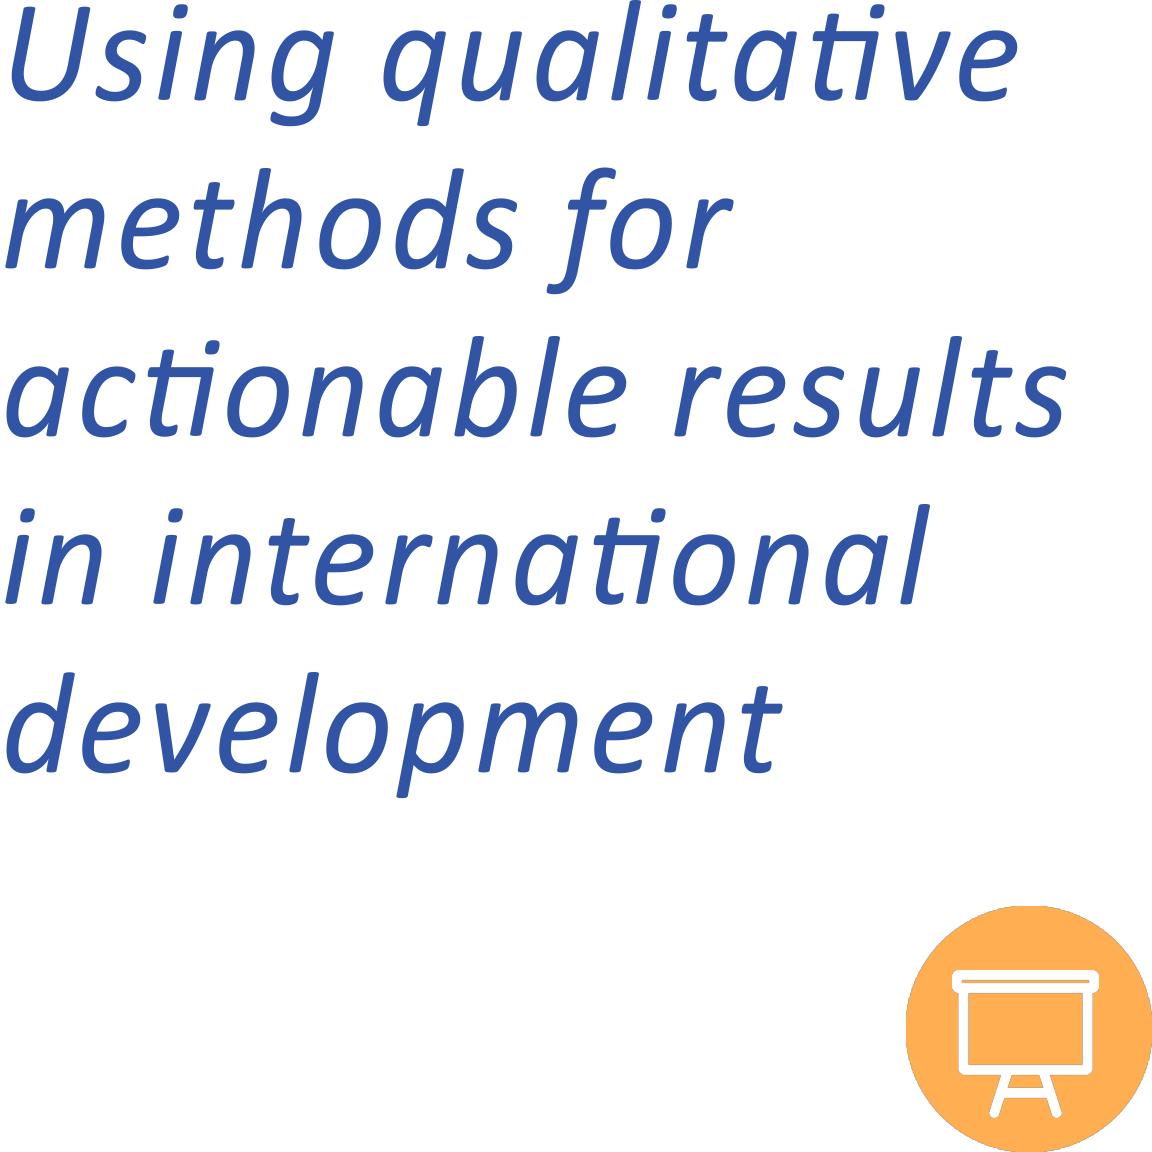 Using Qualitative Methods for Actionable Results in International Settings